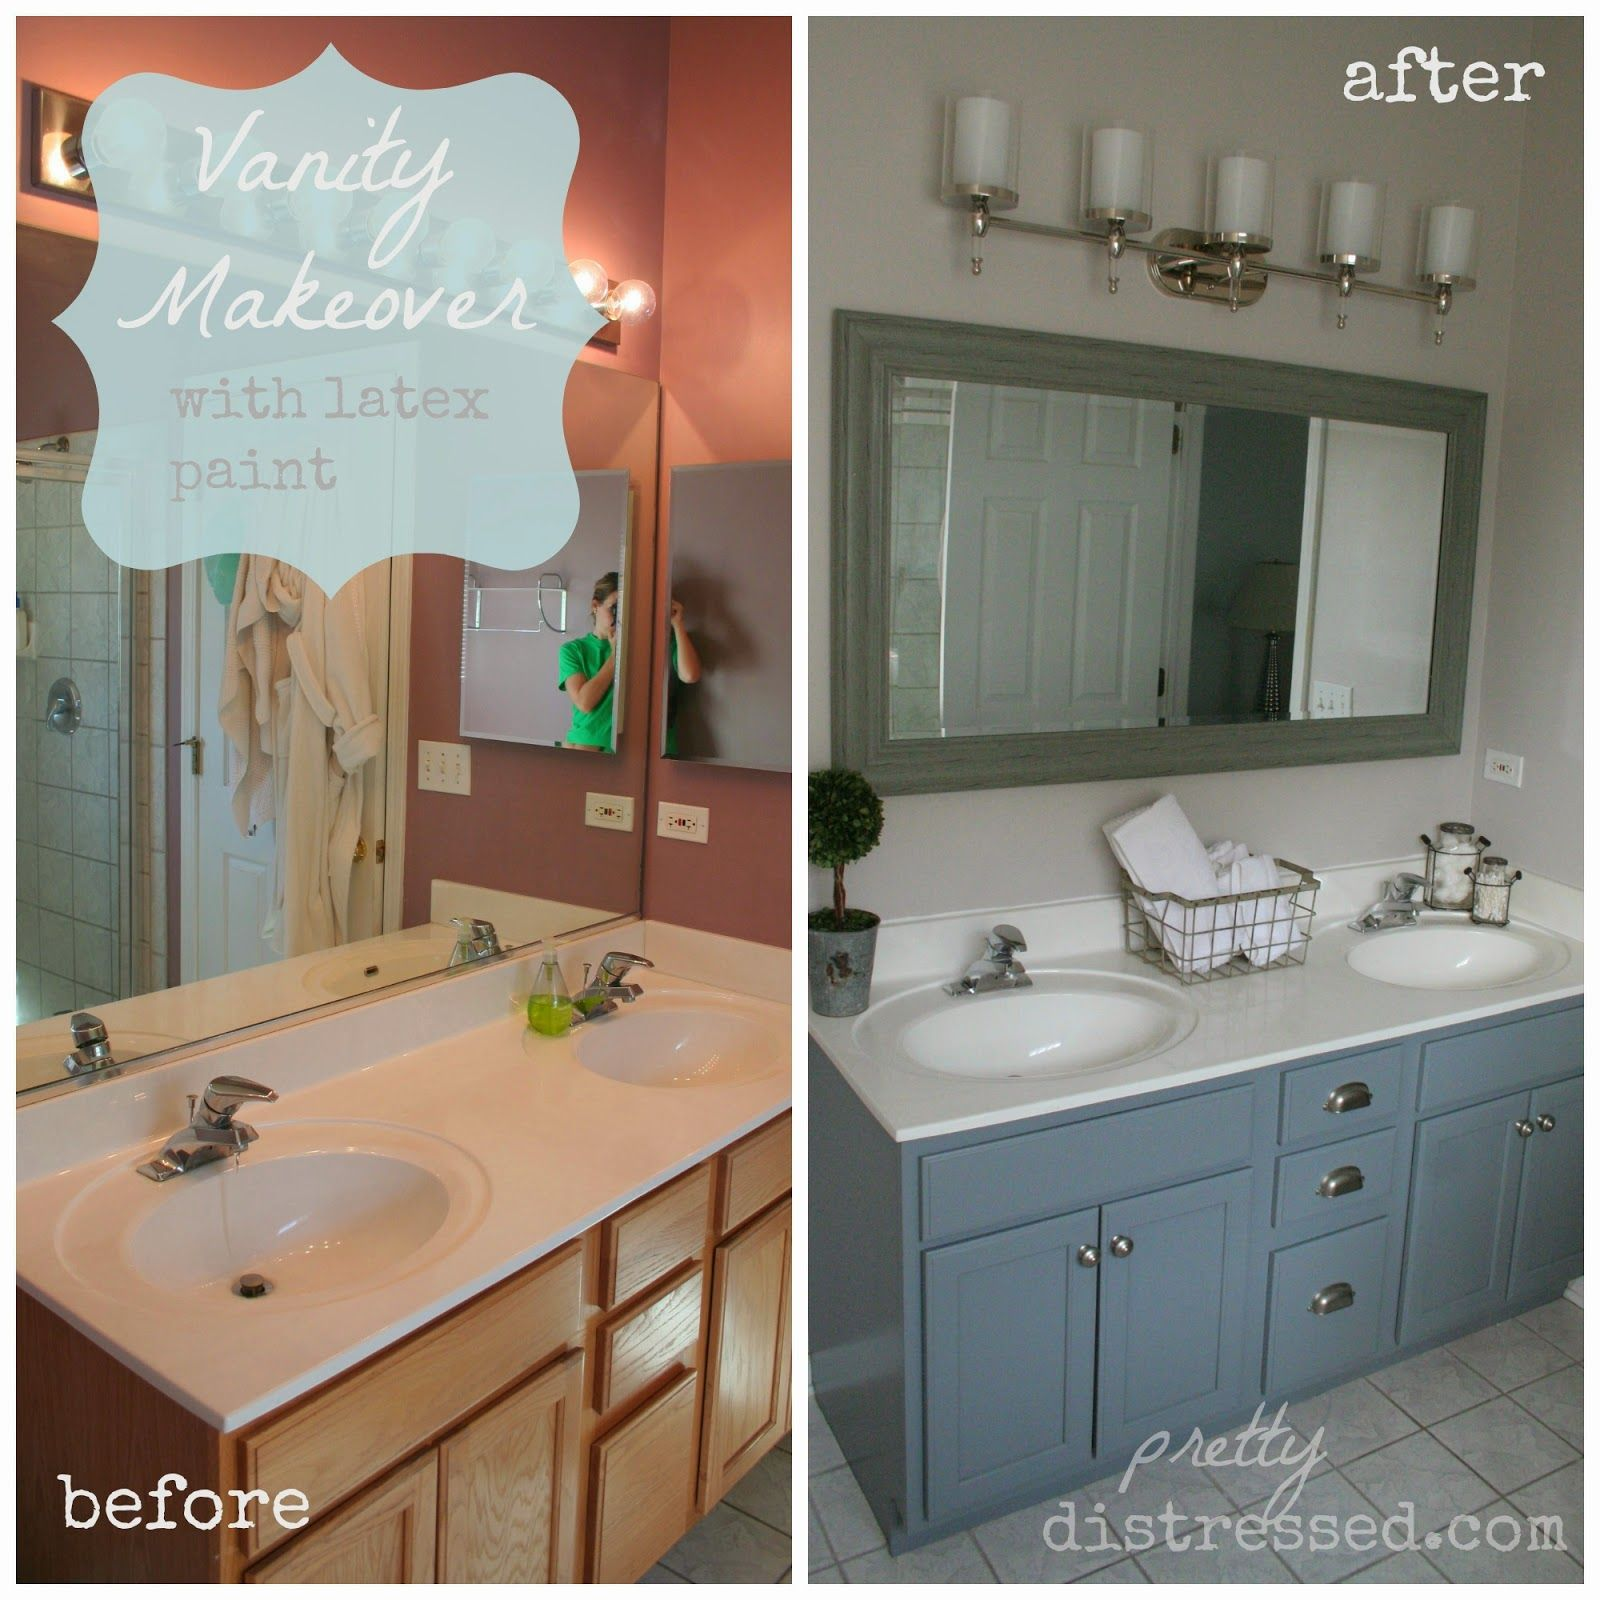 Bathroom Vanity Paint Ideas it's a bathroom makeover on a budget. christina muscari of pretty